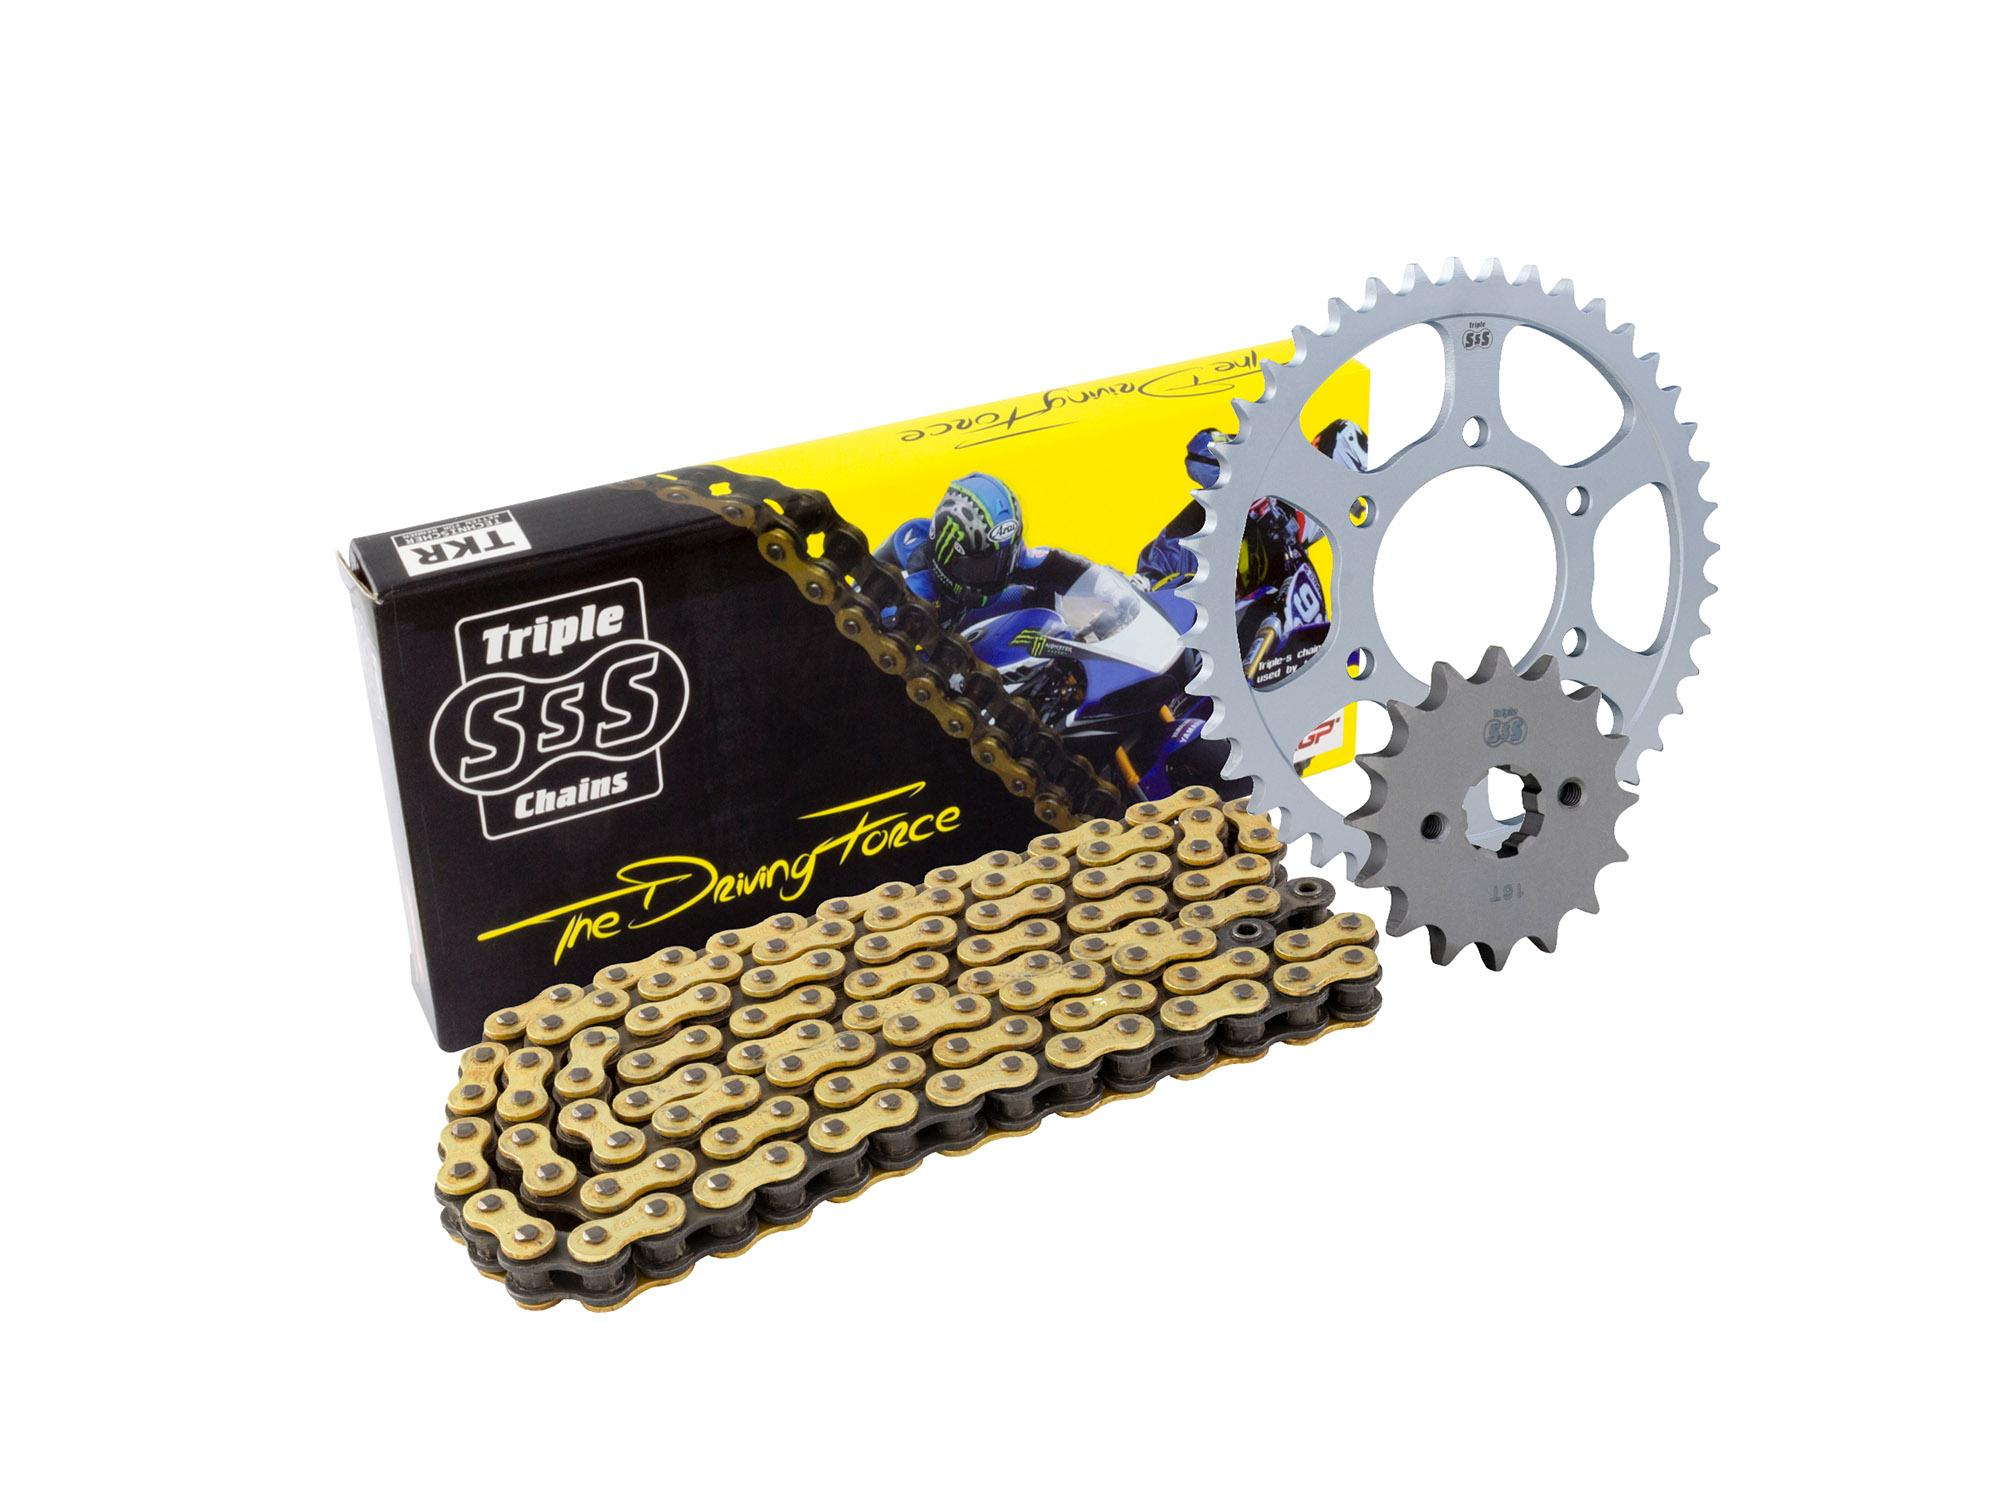 Suzuki DL1000 V-Strom ABS 14-16 Chain & Sprocket Kit: 17T Front, 42T Rear, HD O-Ring Gold Chain 525H 120 Link